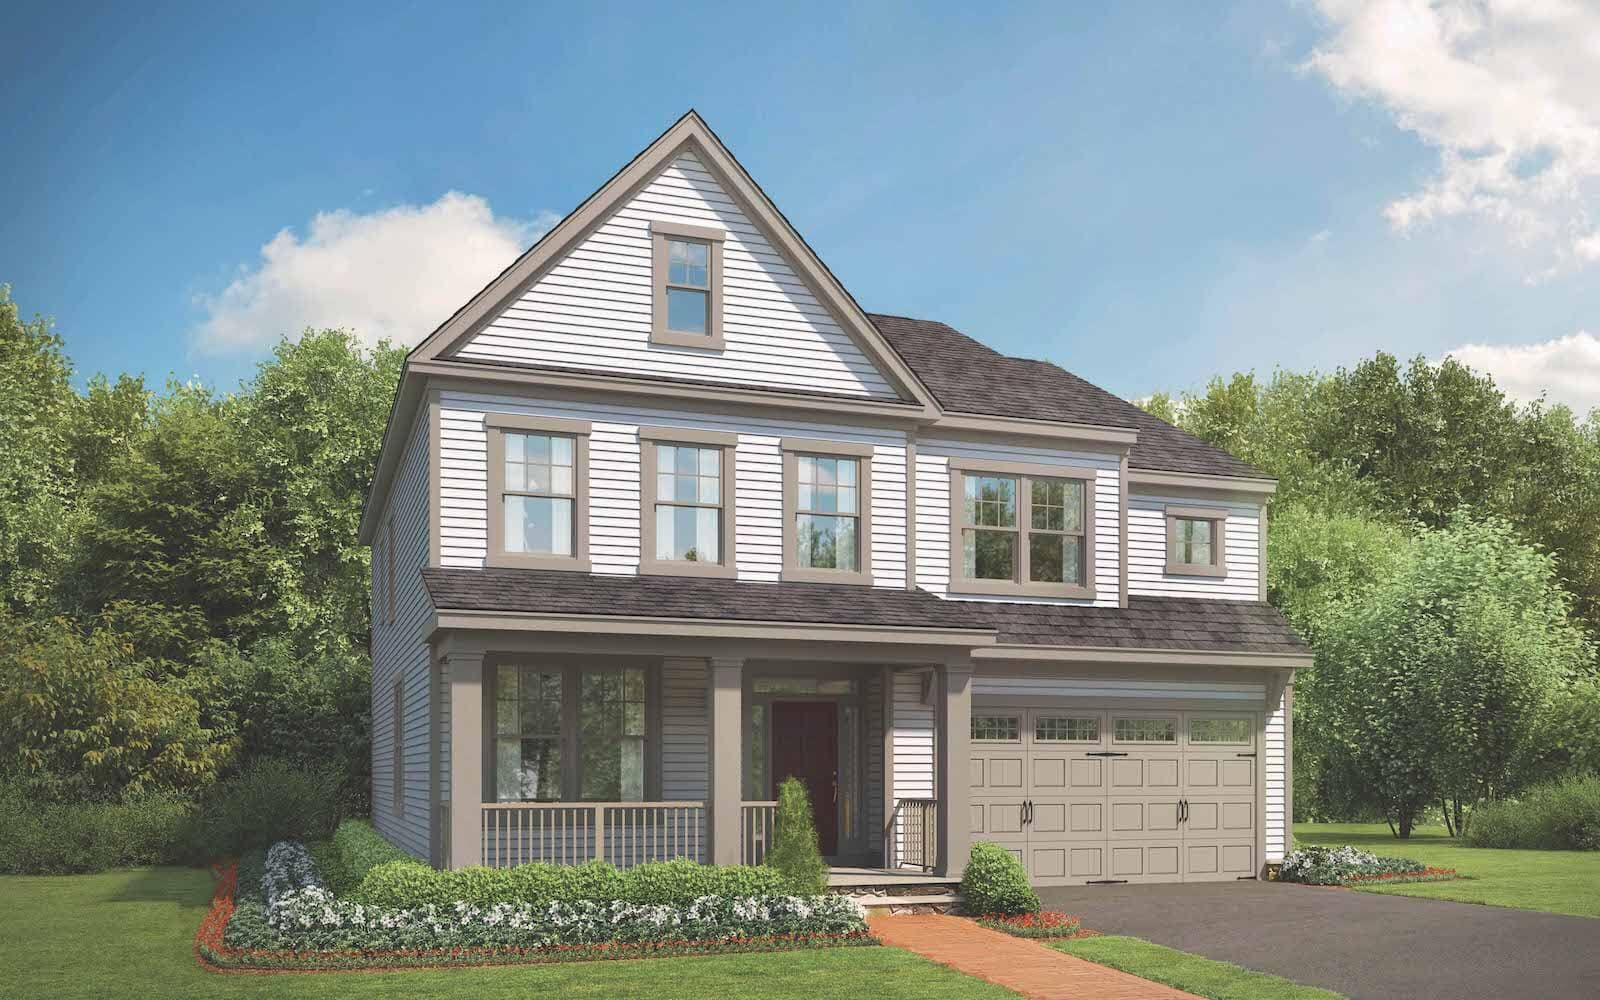 Exterior:Elevation 6 of the Sumner II a home design by Brookfield Residential at Potomac Shores